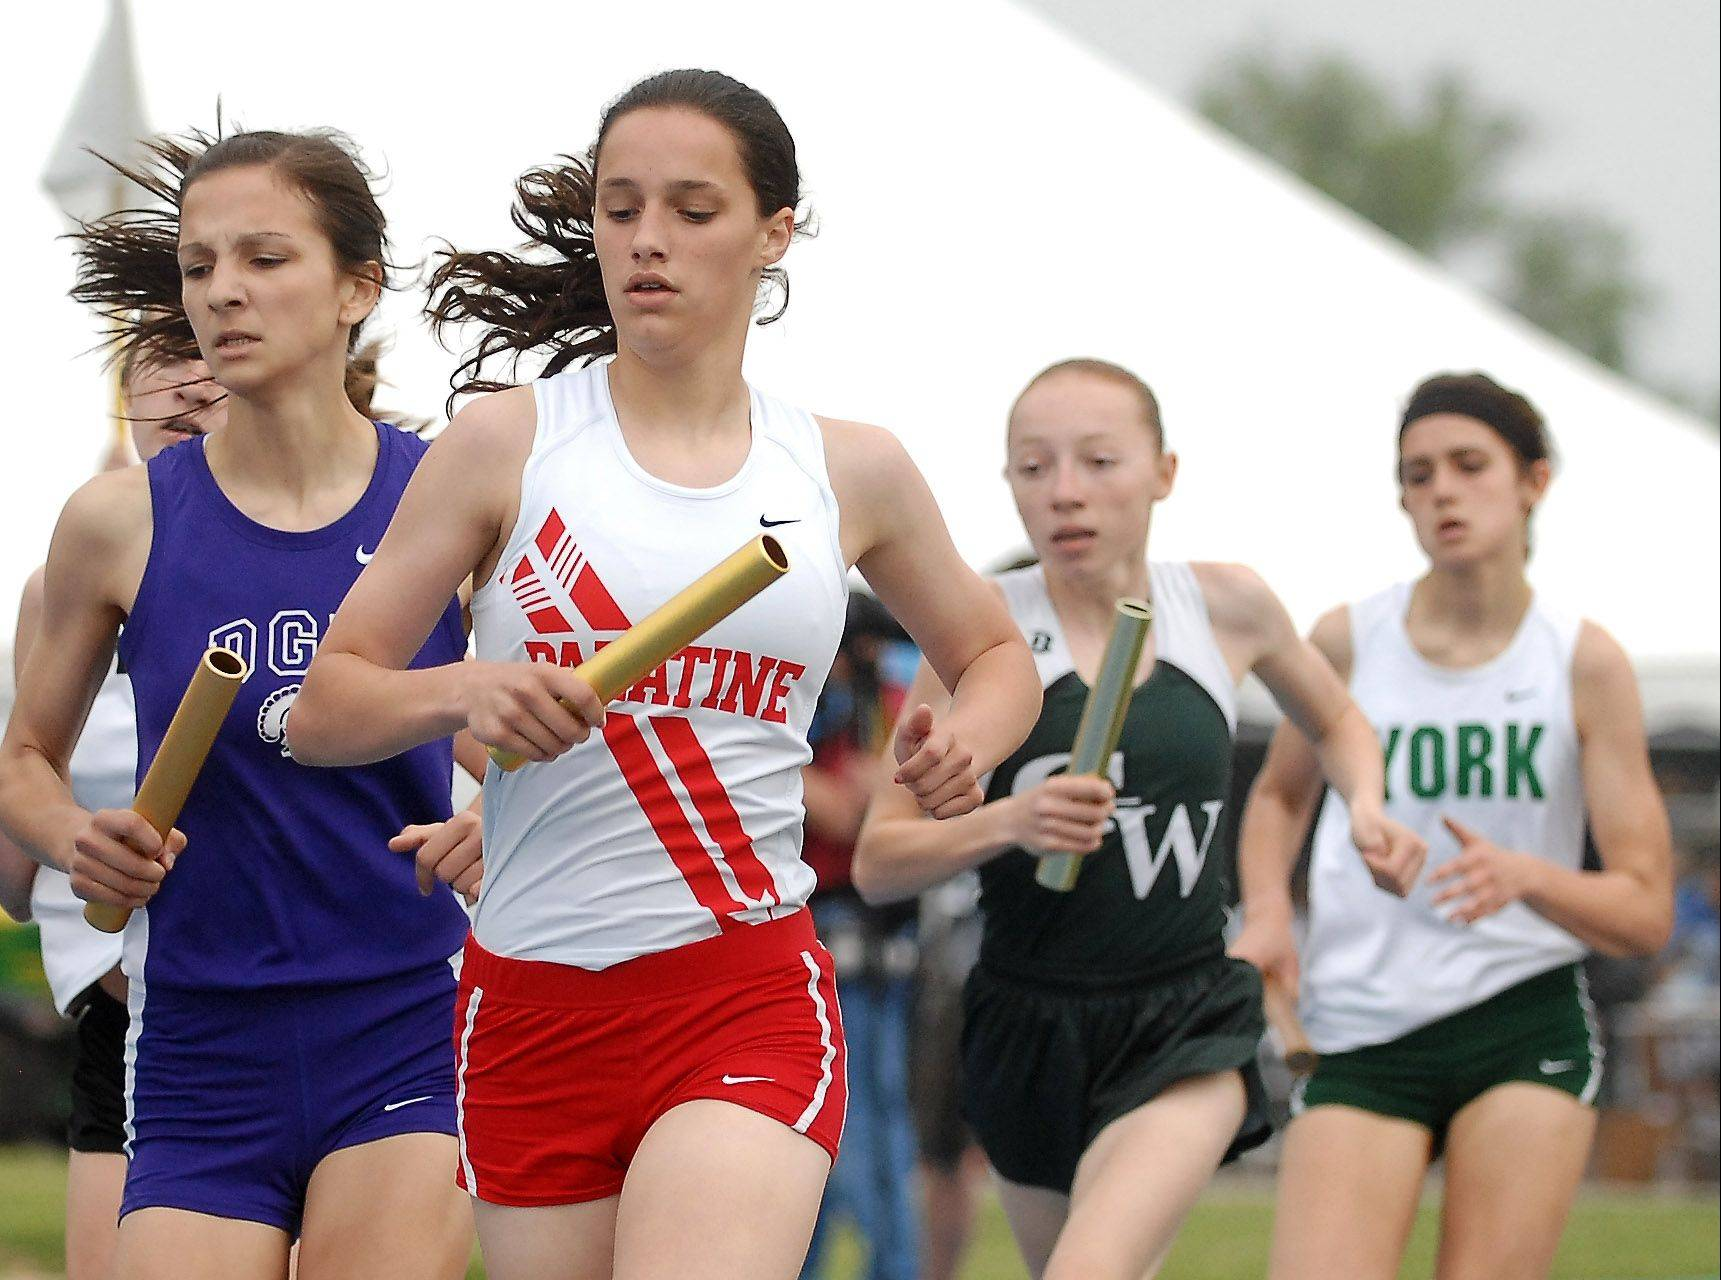 Palatine's Cassidy McPherson, here excelling in the girls track state meet, is among three key seniors central to the Pirates' state trophy hopes.